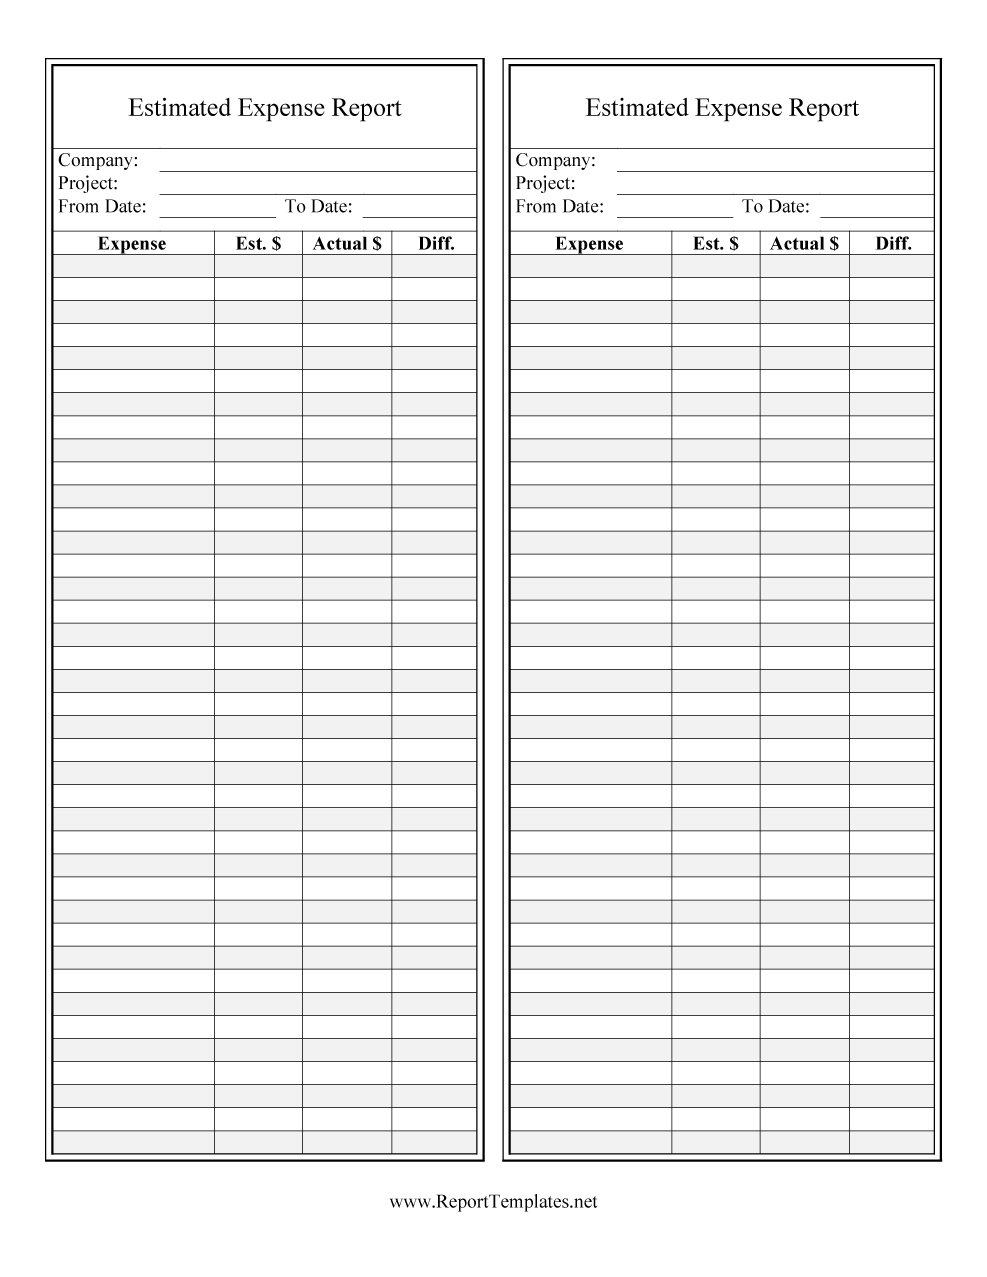 40  Expense Report Templates To Help You Save Money   Template Lab Throughout Microsoft Expense Report Template Microsoft Expense Report Template Expense Spreadshee Expense Spreadshee microsoft expense report template